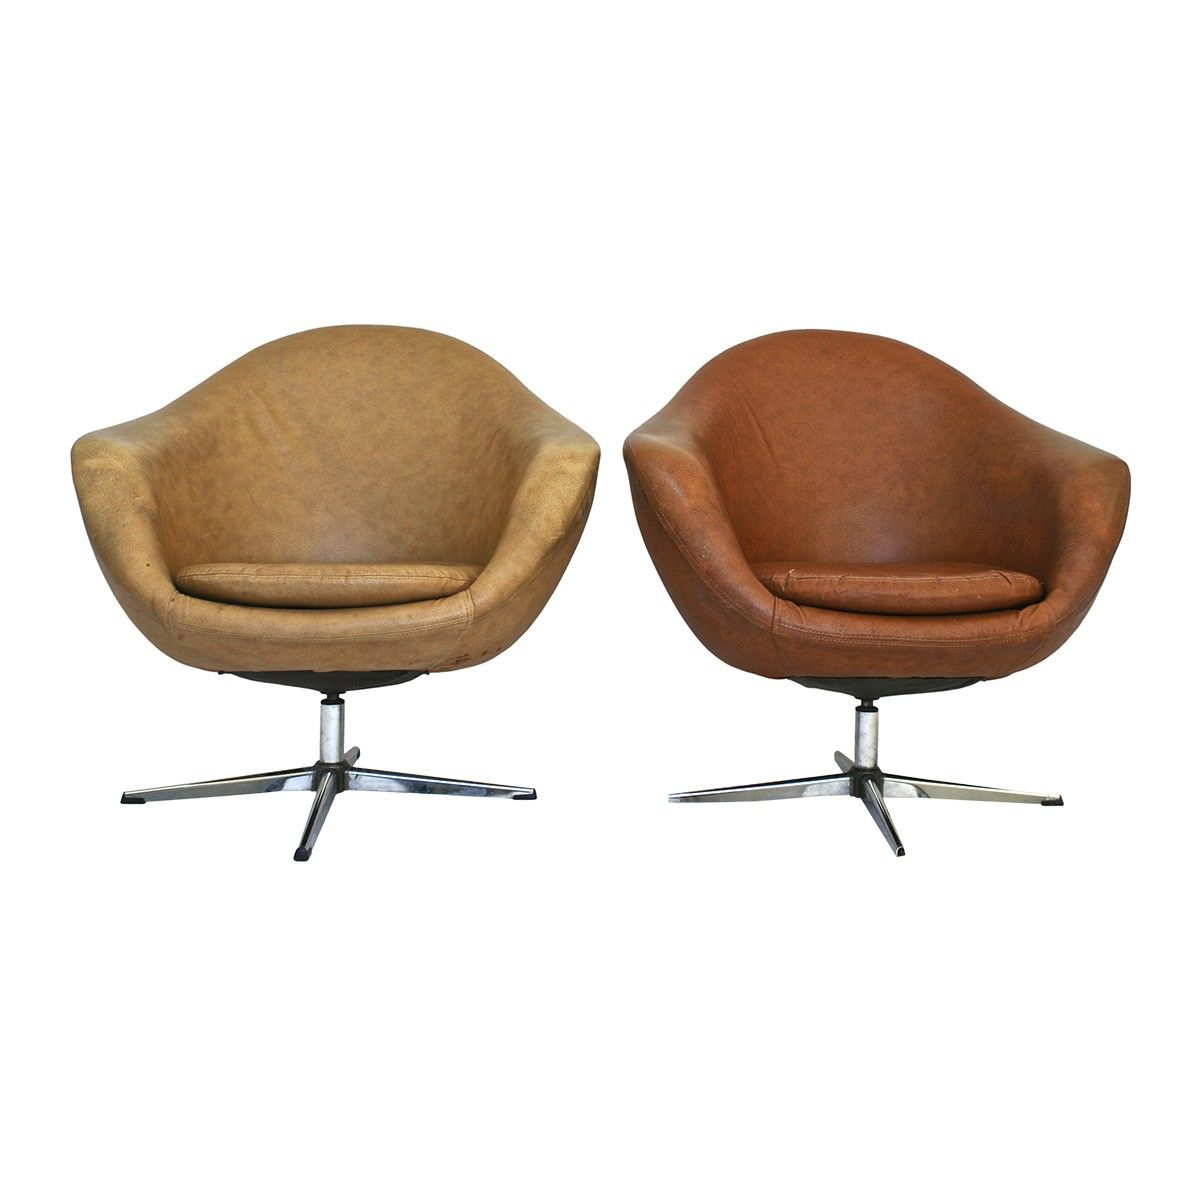 Designer Swivel Chairs For Living Room Midcentury Modern Swivel Chairs  Swivel Chair Midcentury